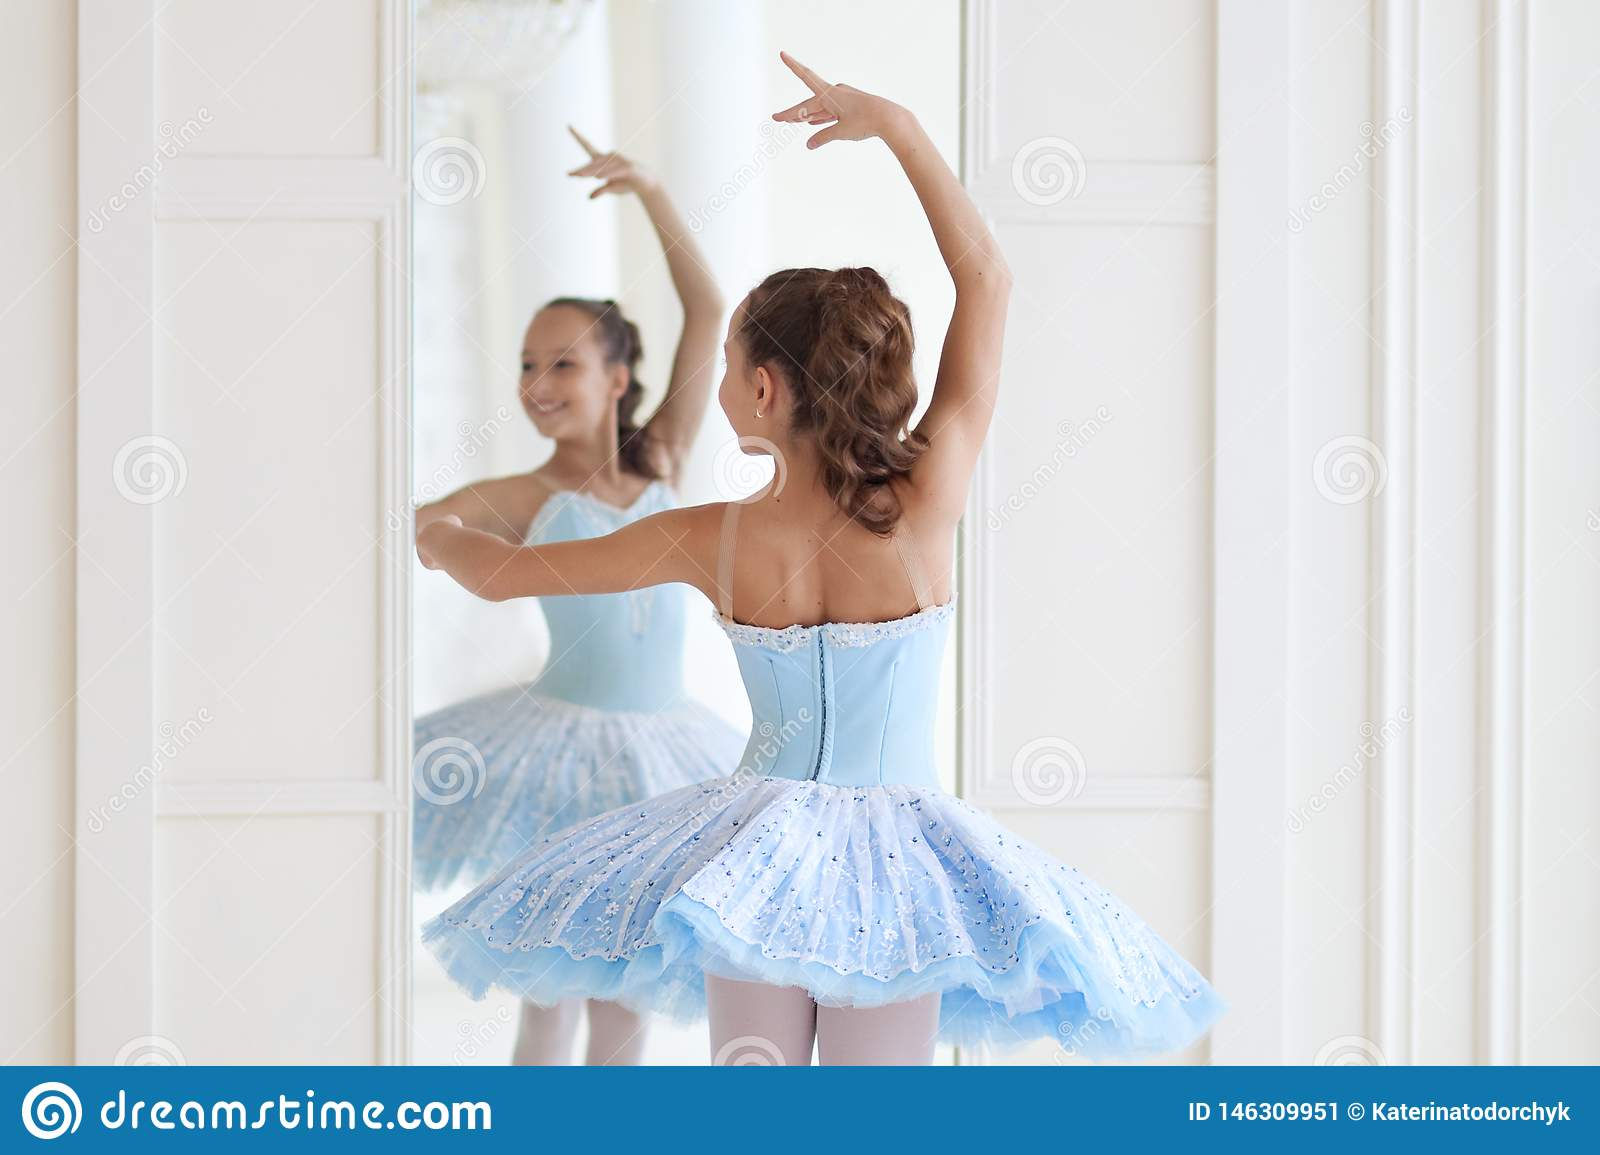 A cute ballerina in ballet costume and in pointe dances near the mirror. Girl in the dance class. The girl is studying ballet. Bal